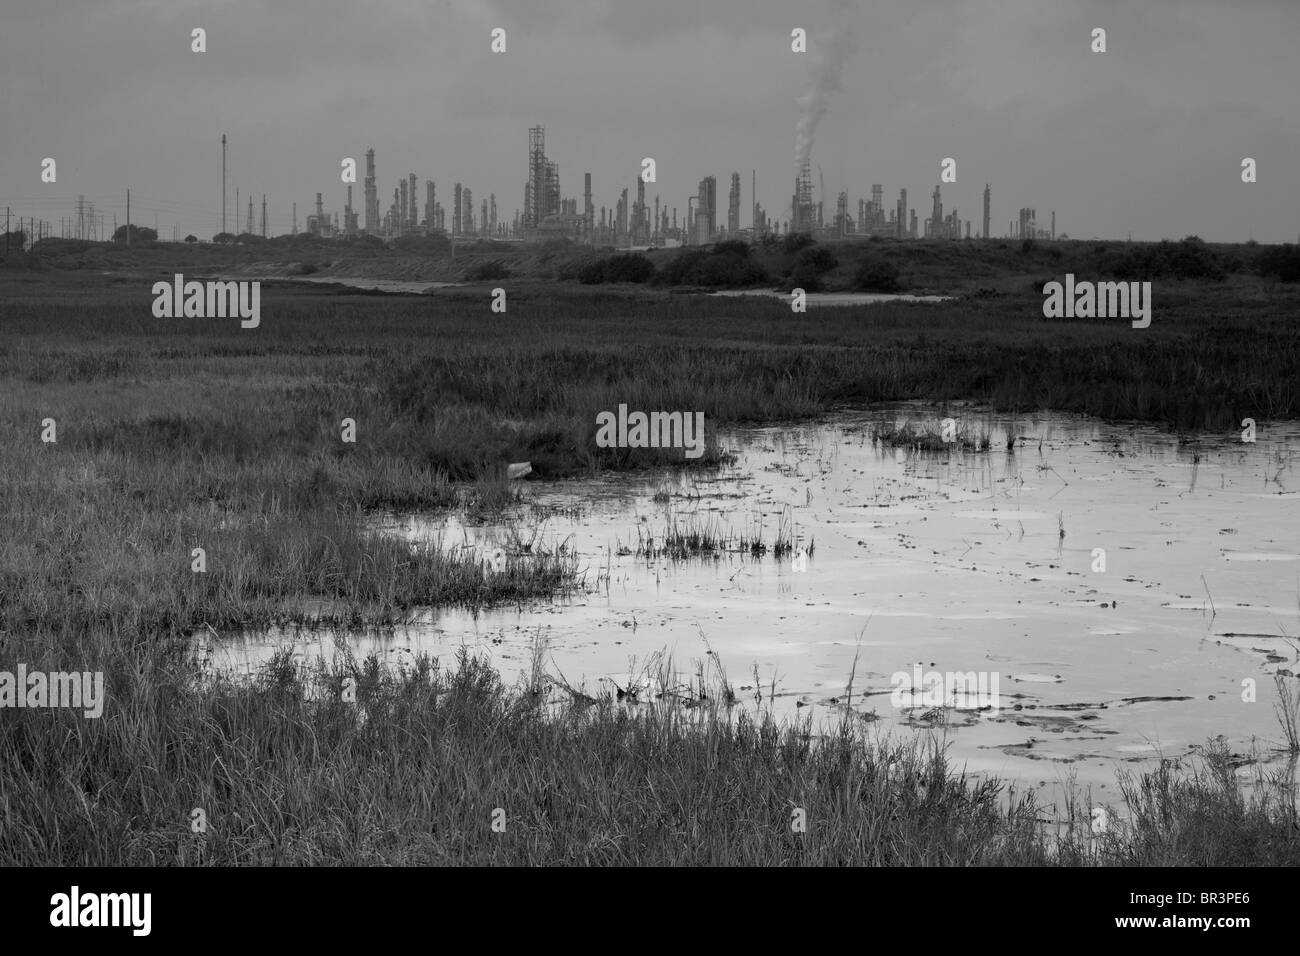 Oil refinery effects in Corpus Christi, Texas. - Stock Image